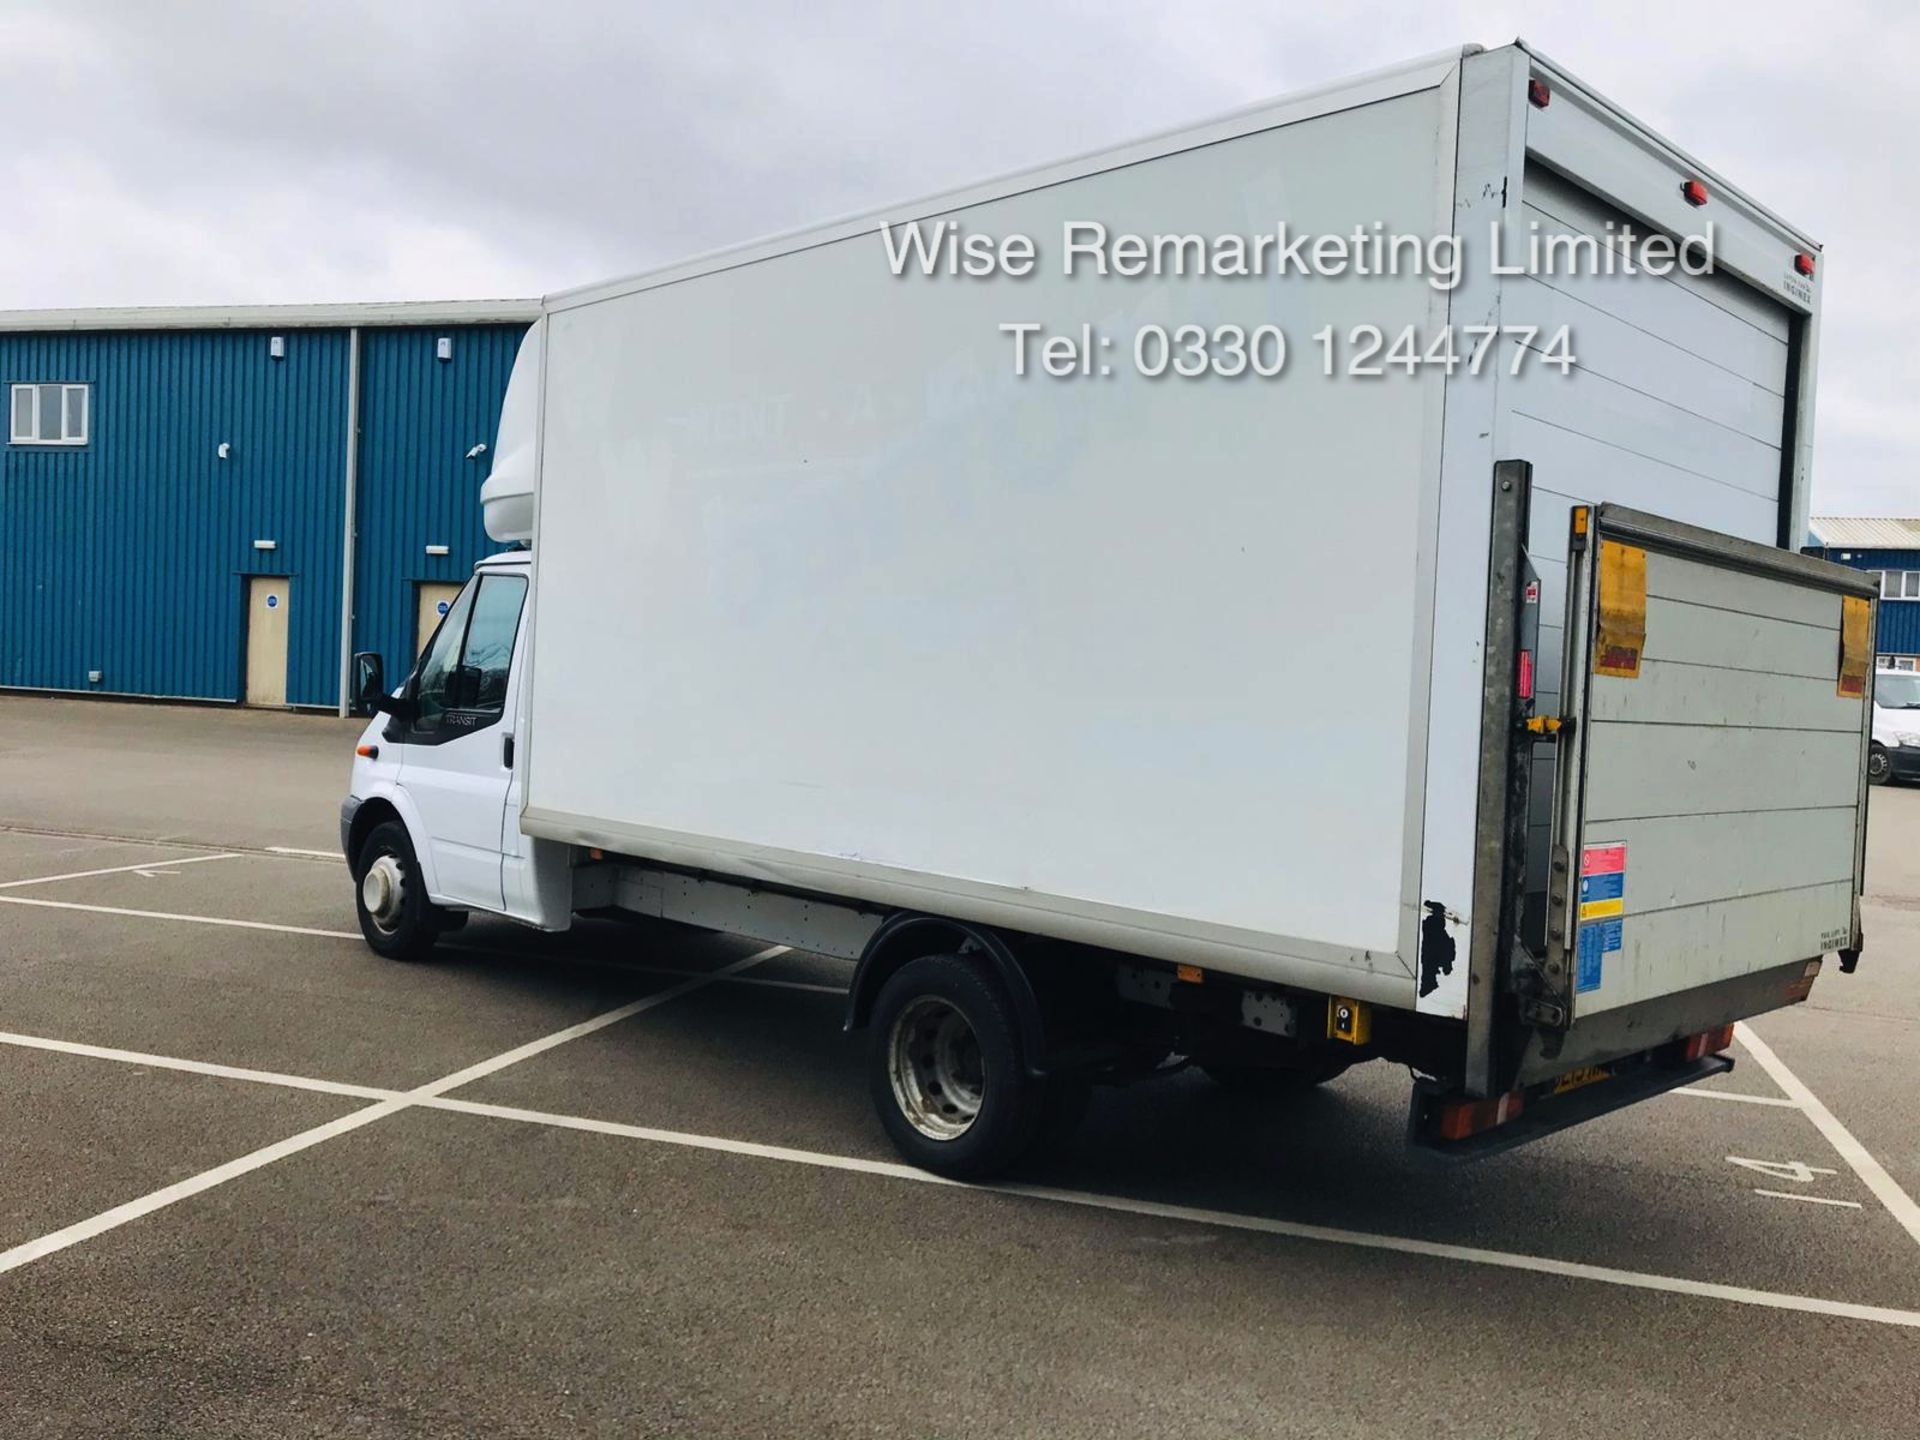 Lot 15 - Ford Transit T350 2.2 TDCI Luton Van - 6 Speed - Tail Lift - 2013 13 Reg - SAVE 20% NO VAT